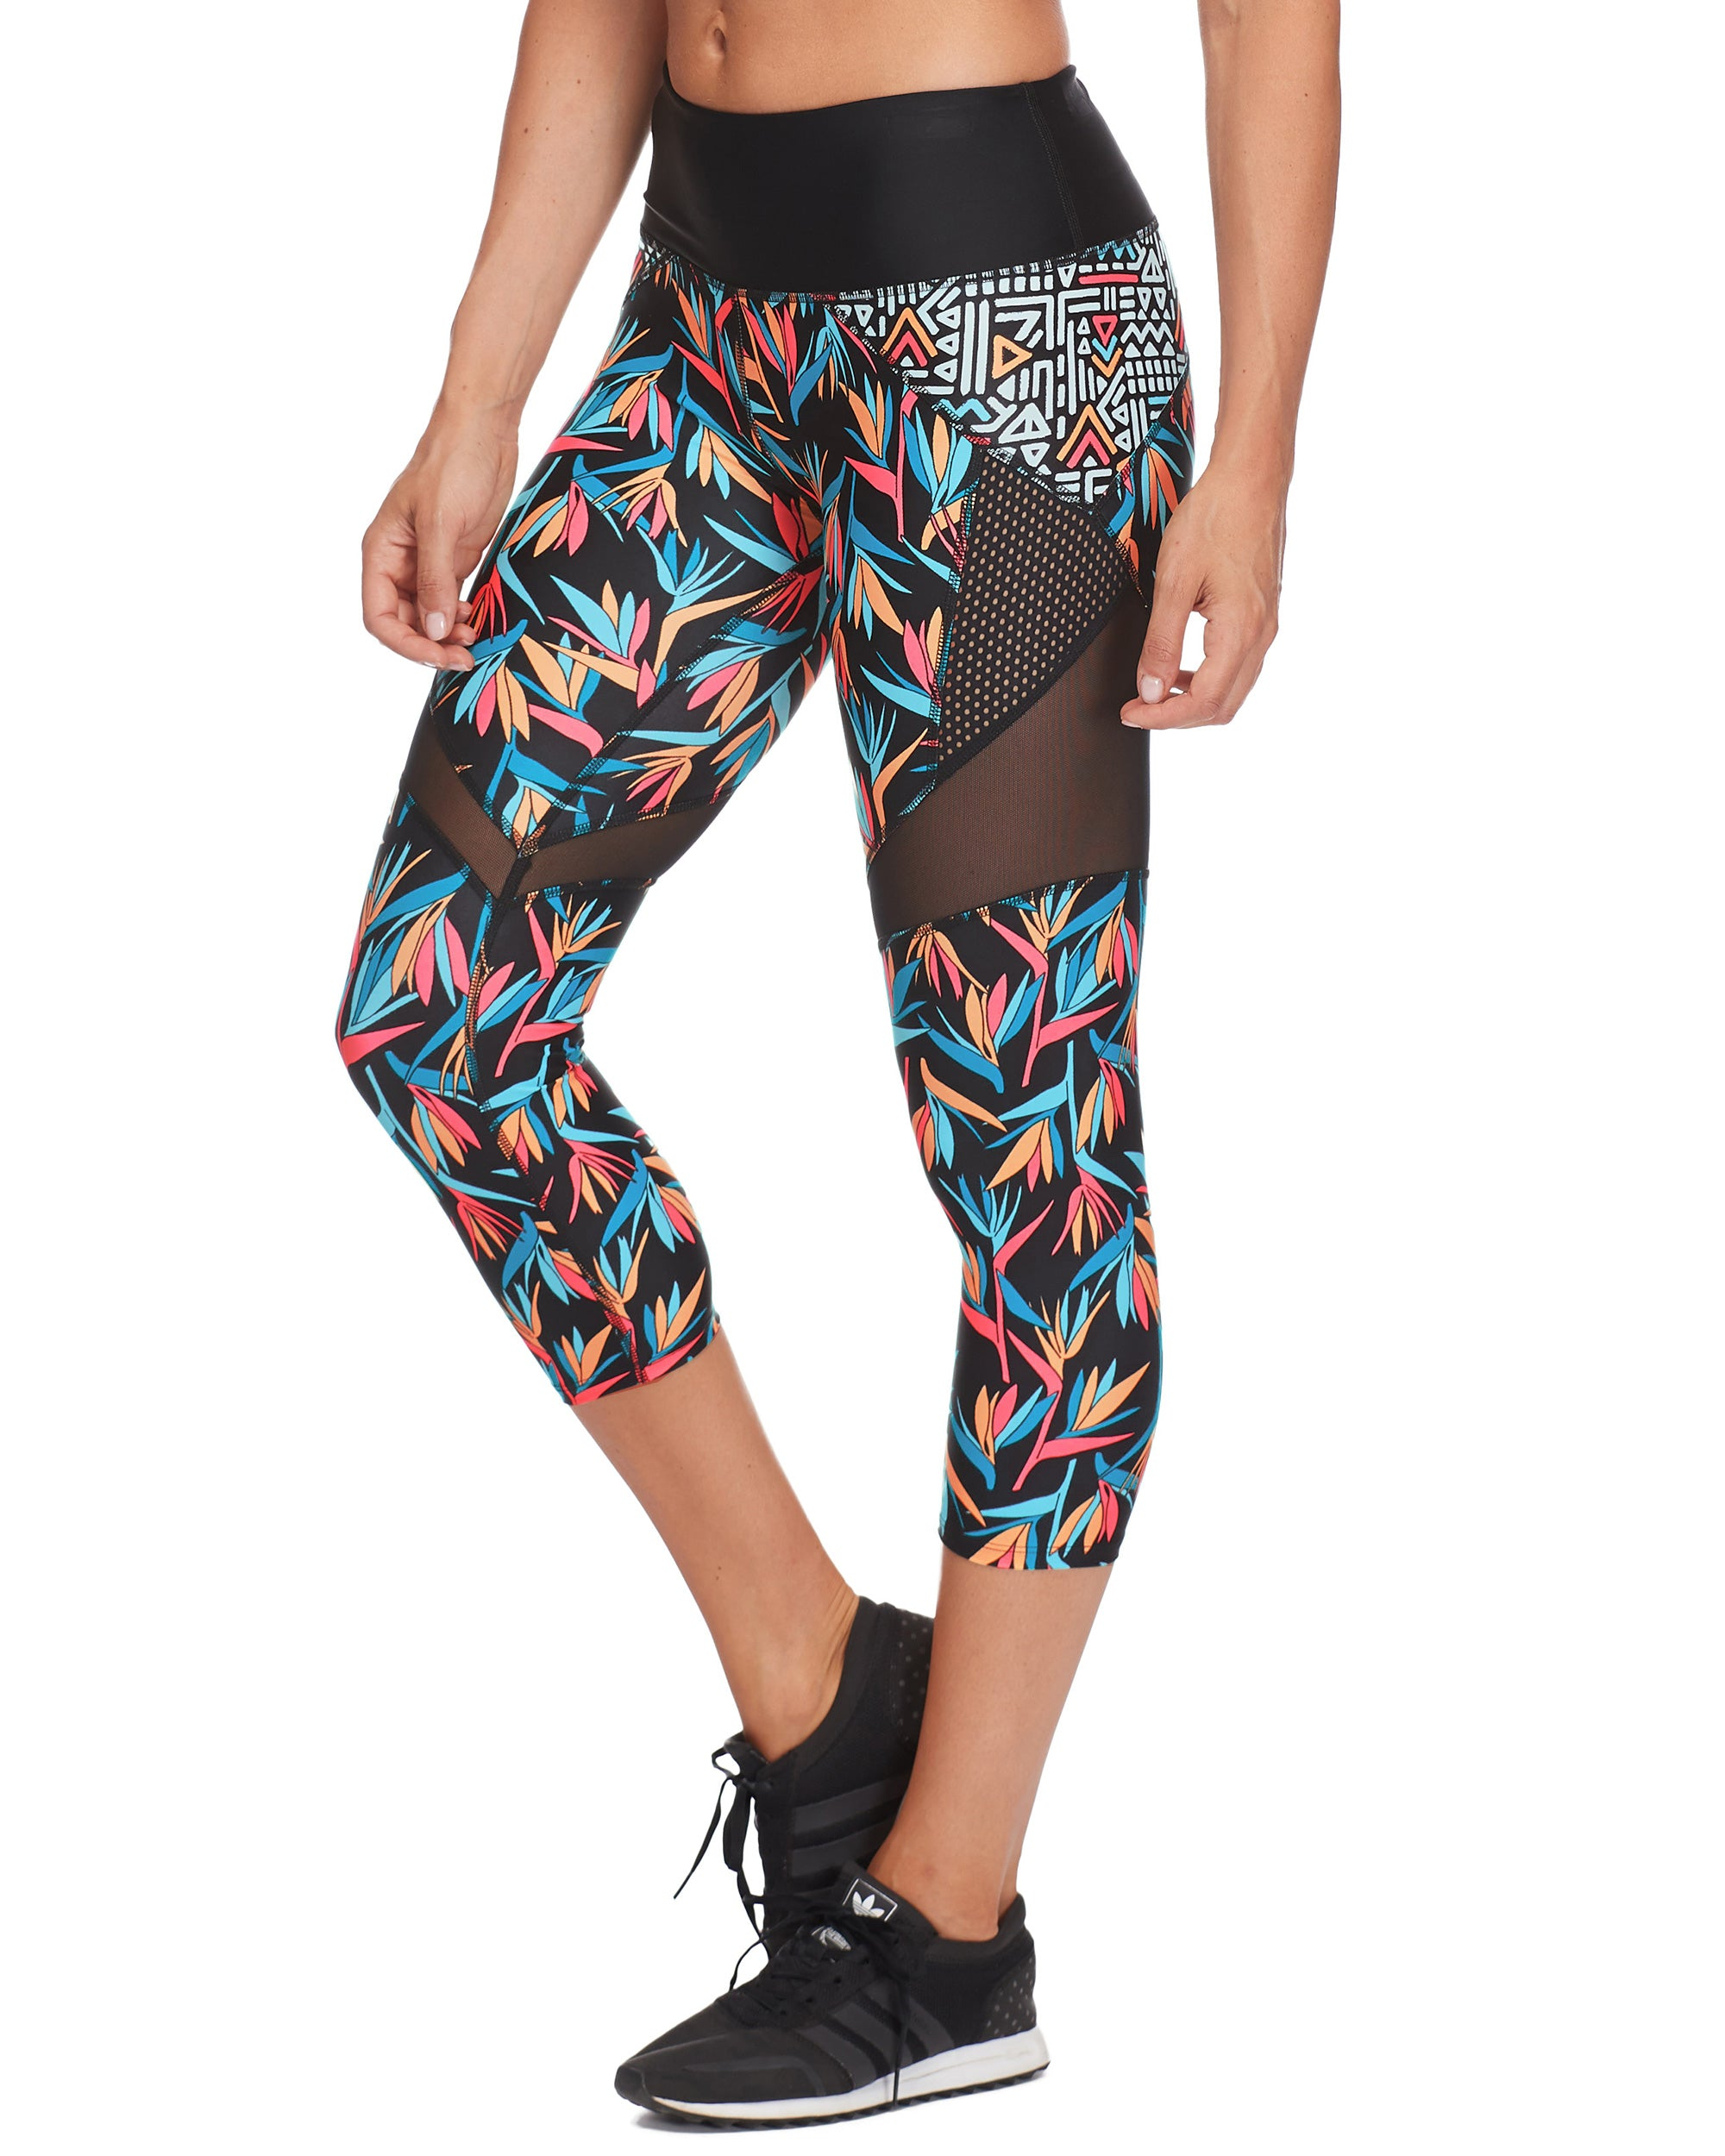 Propel Cross-Over Capri Legging in Hang Loose - Black